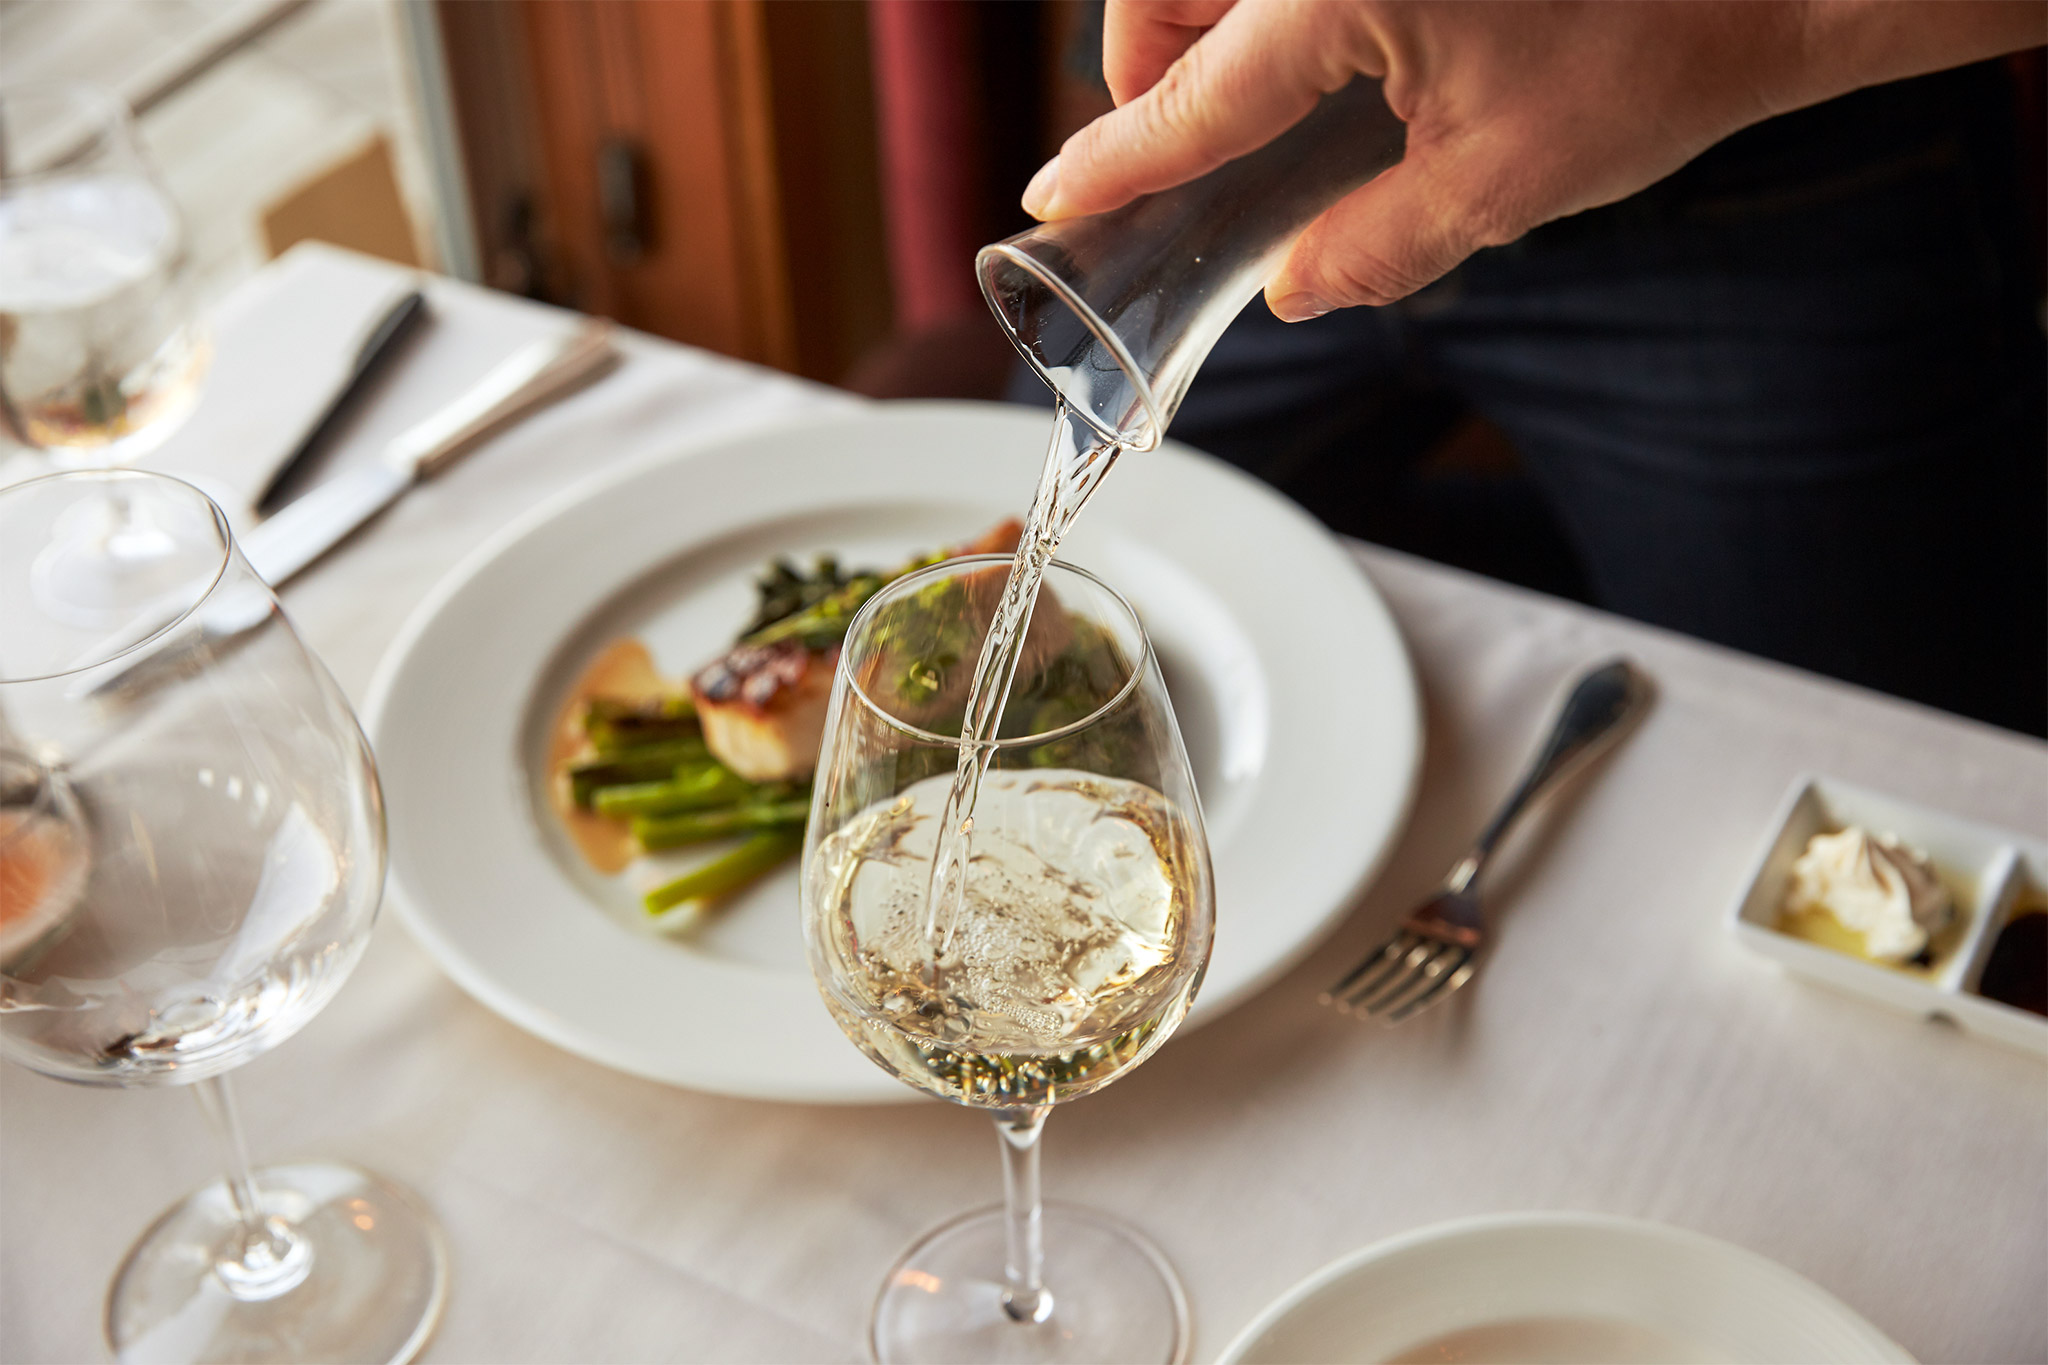 Pair a great wine with dinner